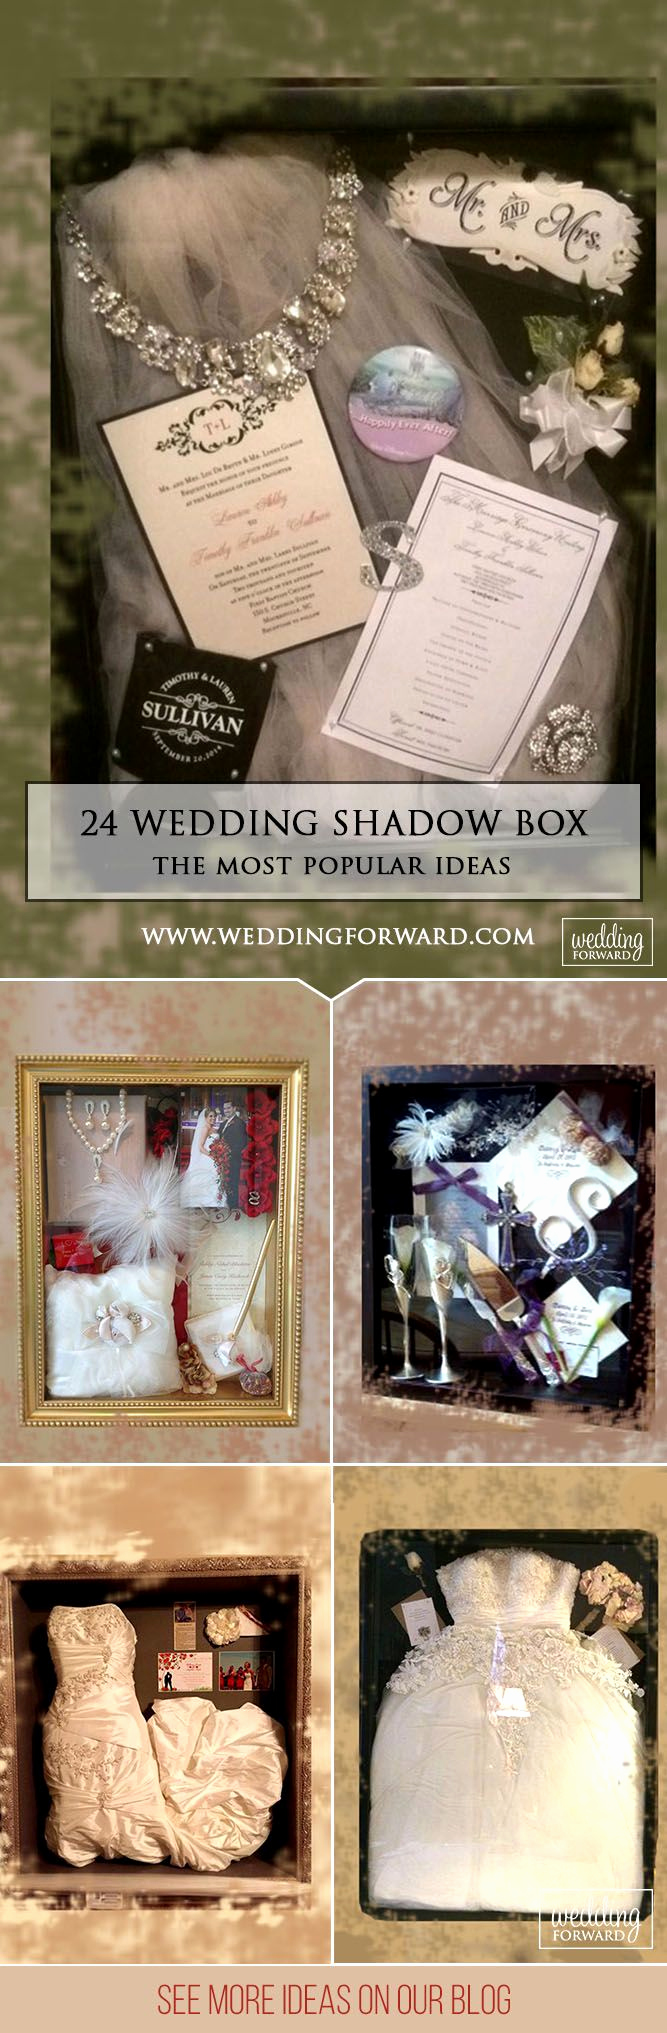 Wedding Invitation Shadow Box Ideas Lovely Best 25 Wedding Shadow Boxes Ideas On Pinterest